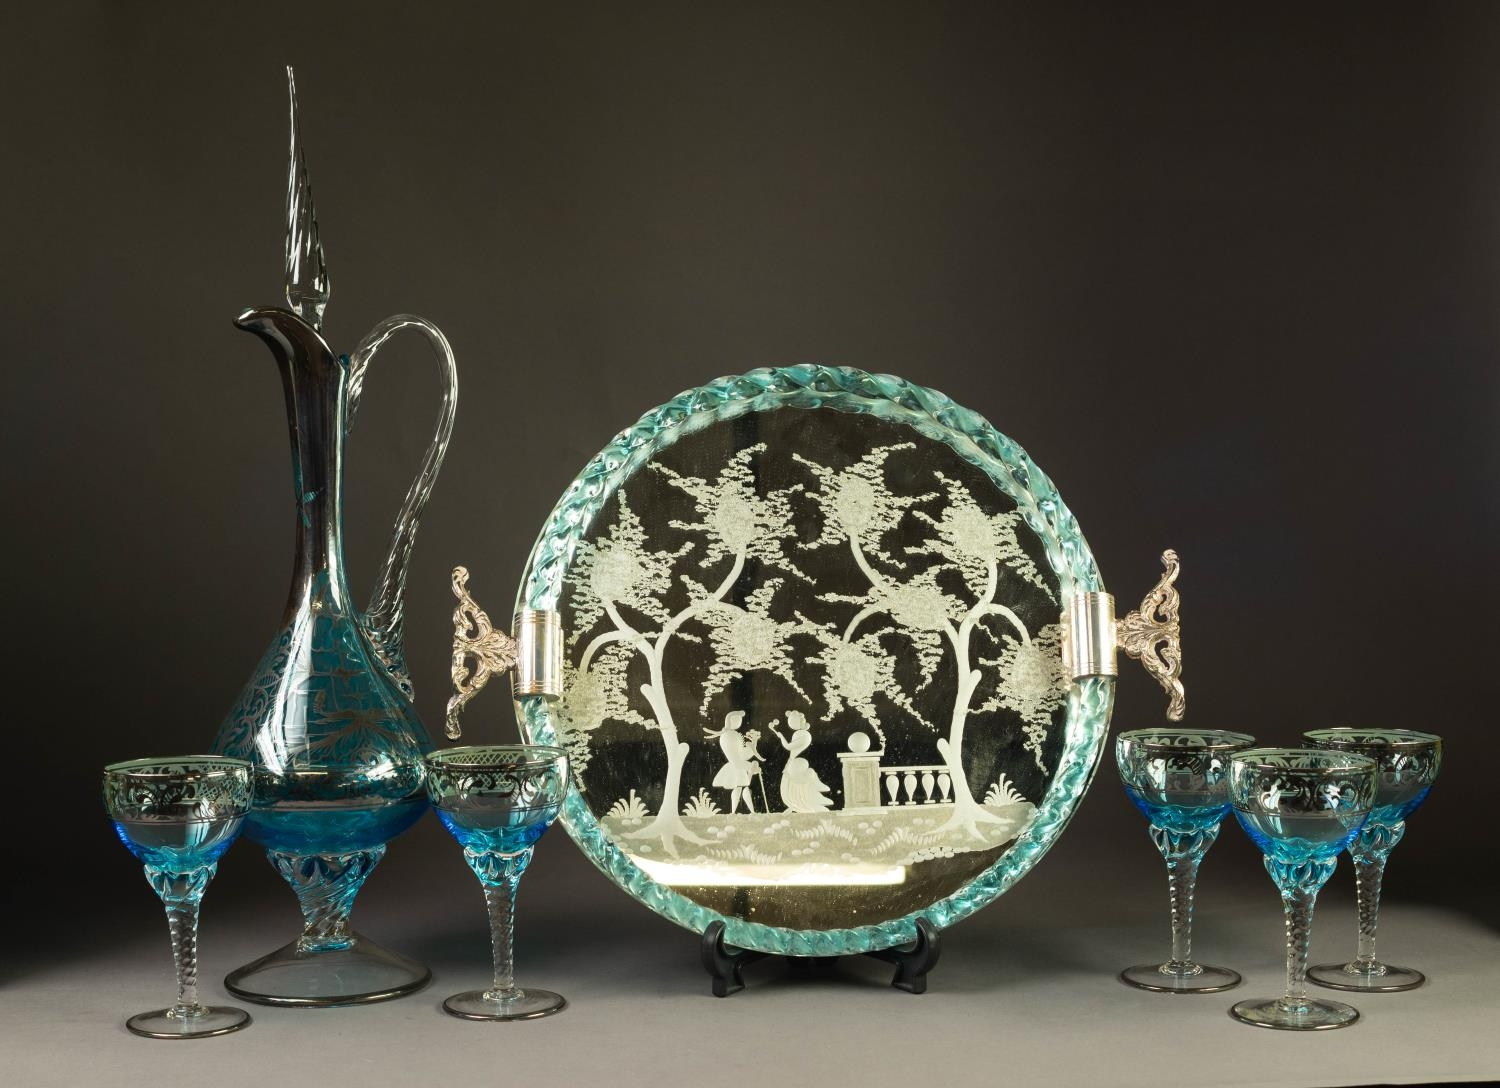 VINTAGE VENETIAN GLASS DRINKS SET comprising a circular tray with trailed blue tinted glass rope-